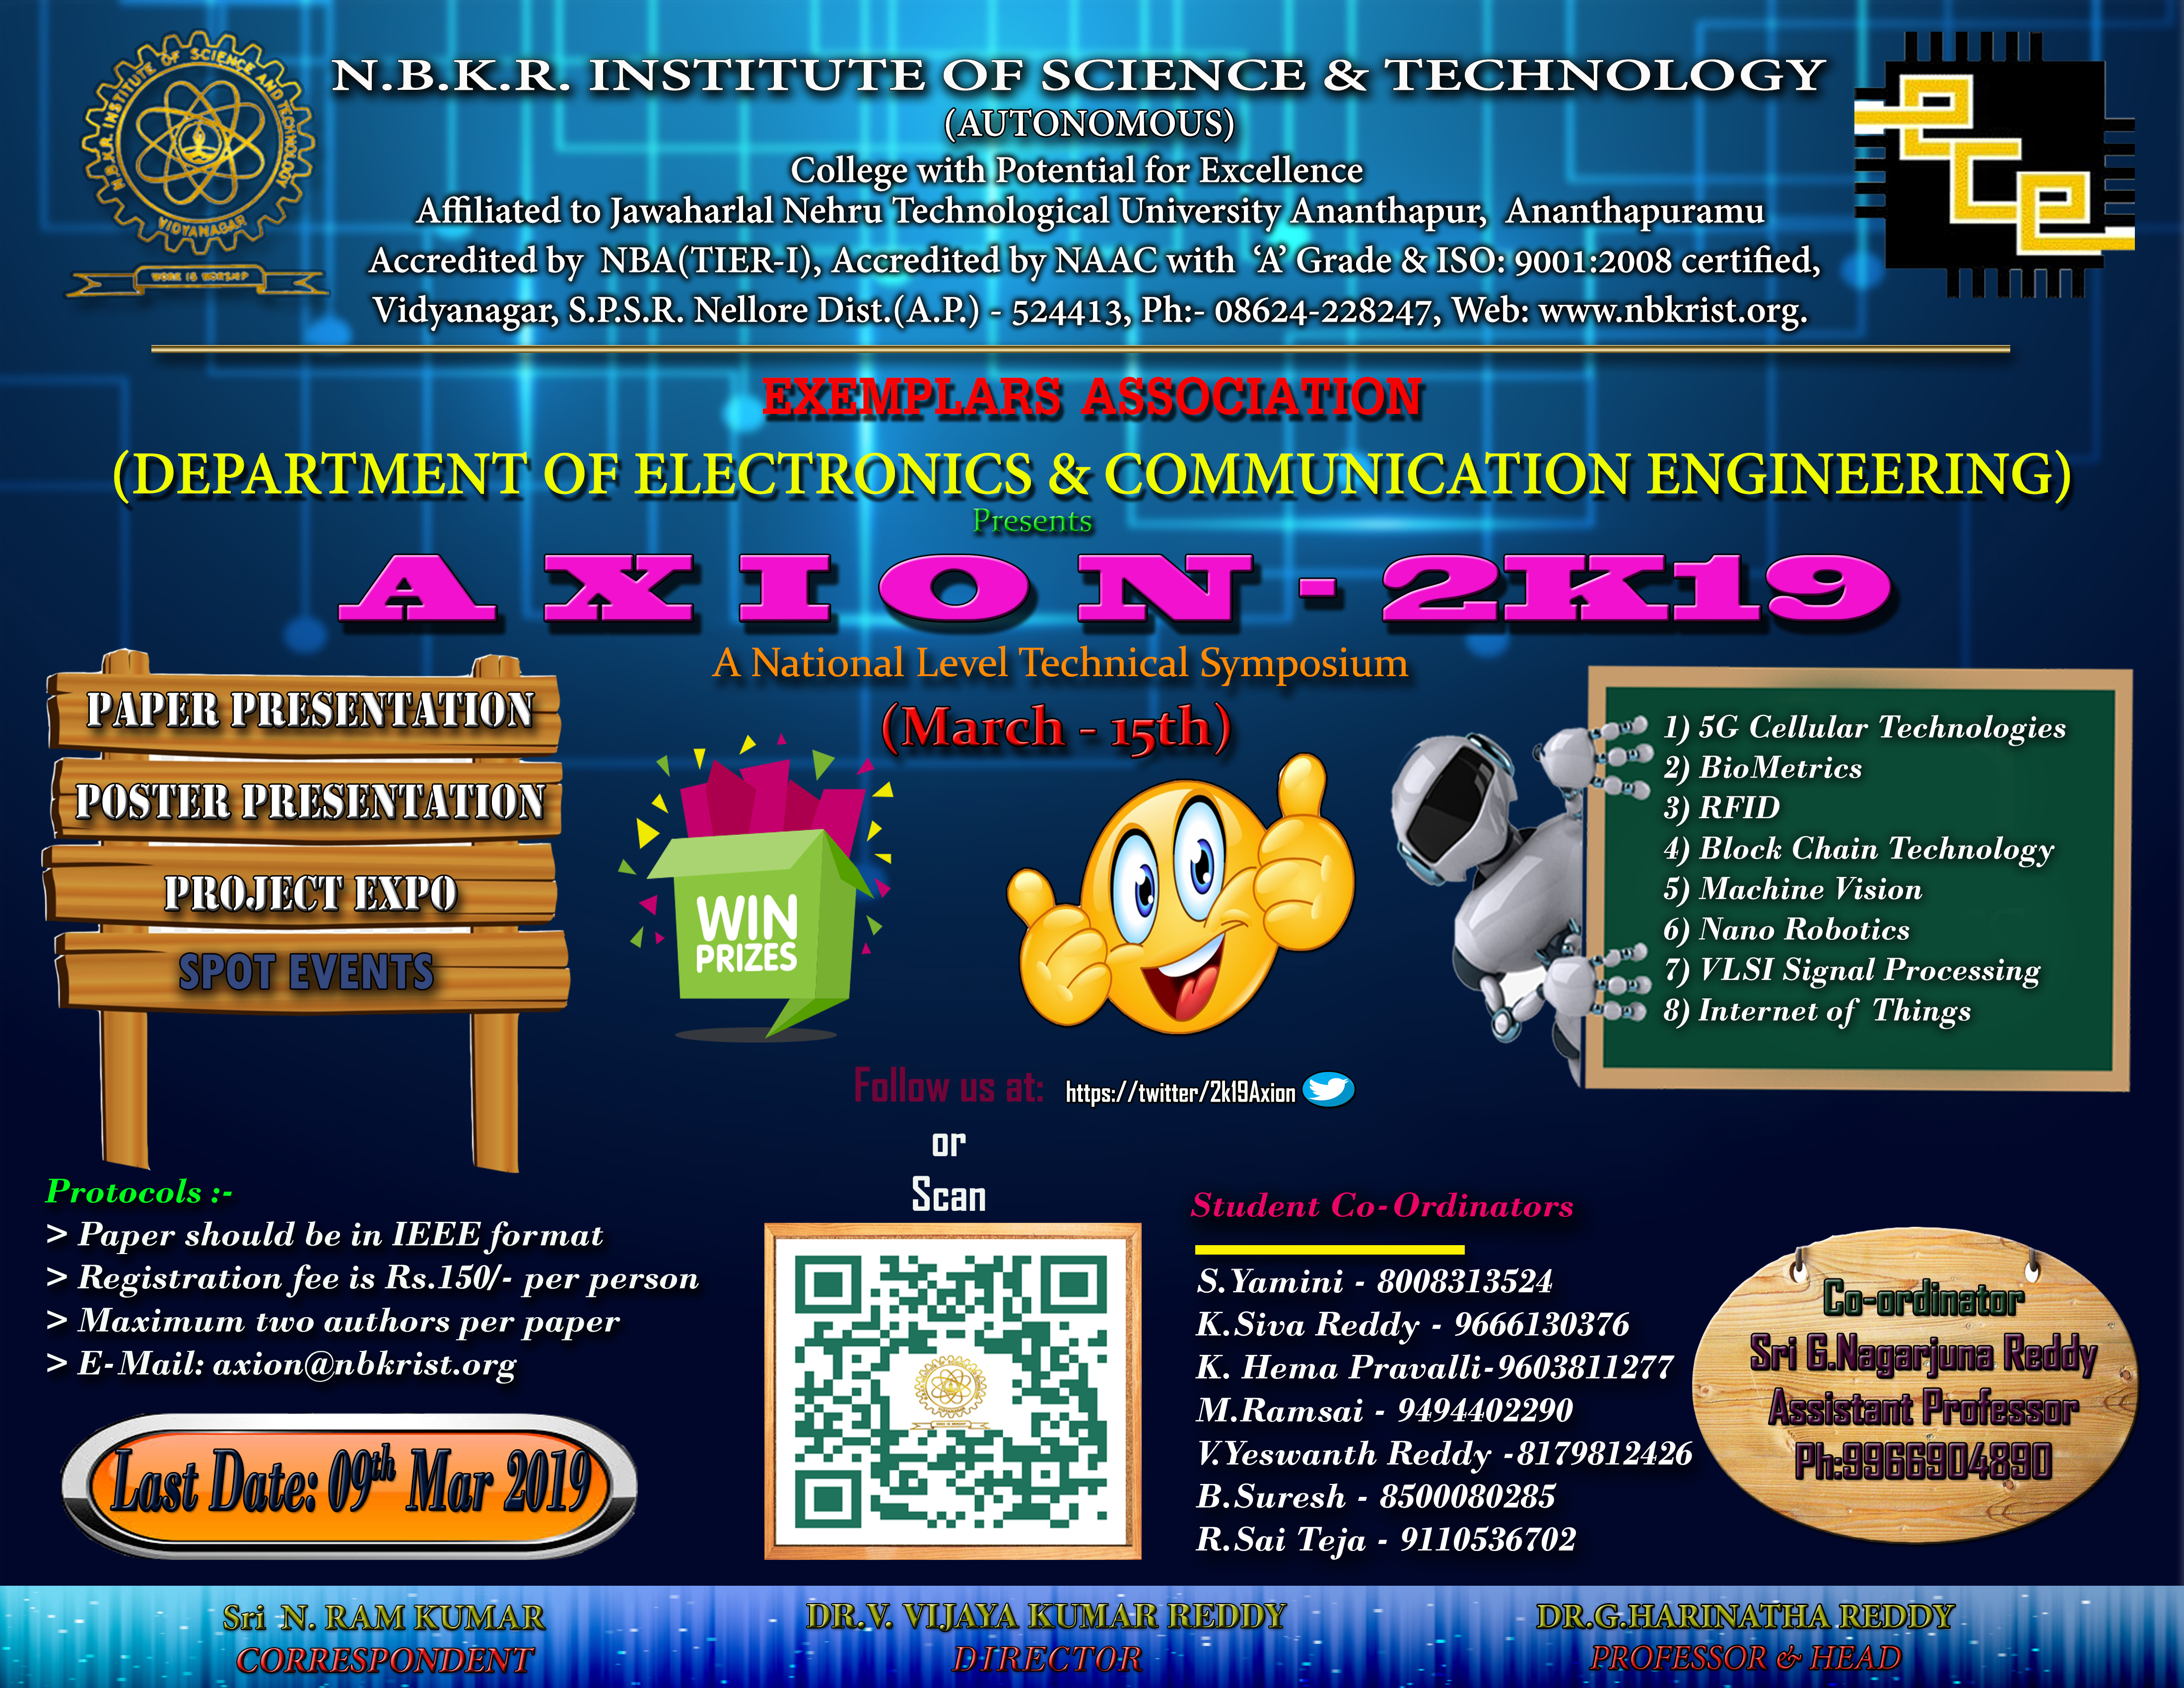 department of ece organizing axion 2019 a national level technical symposium on 15th march 2019